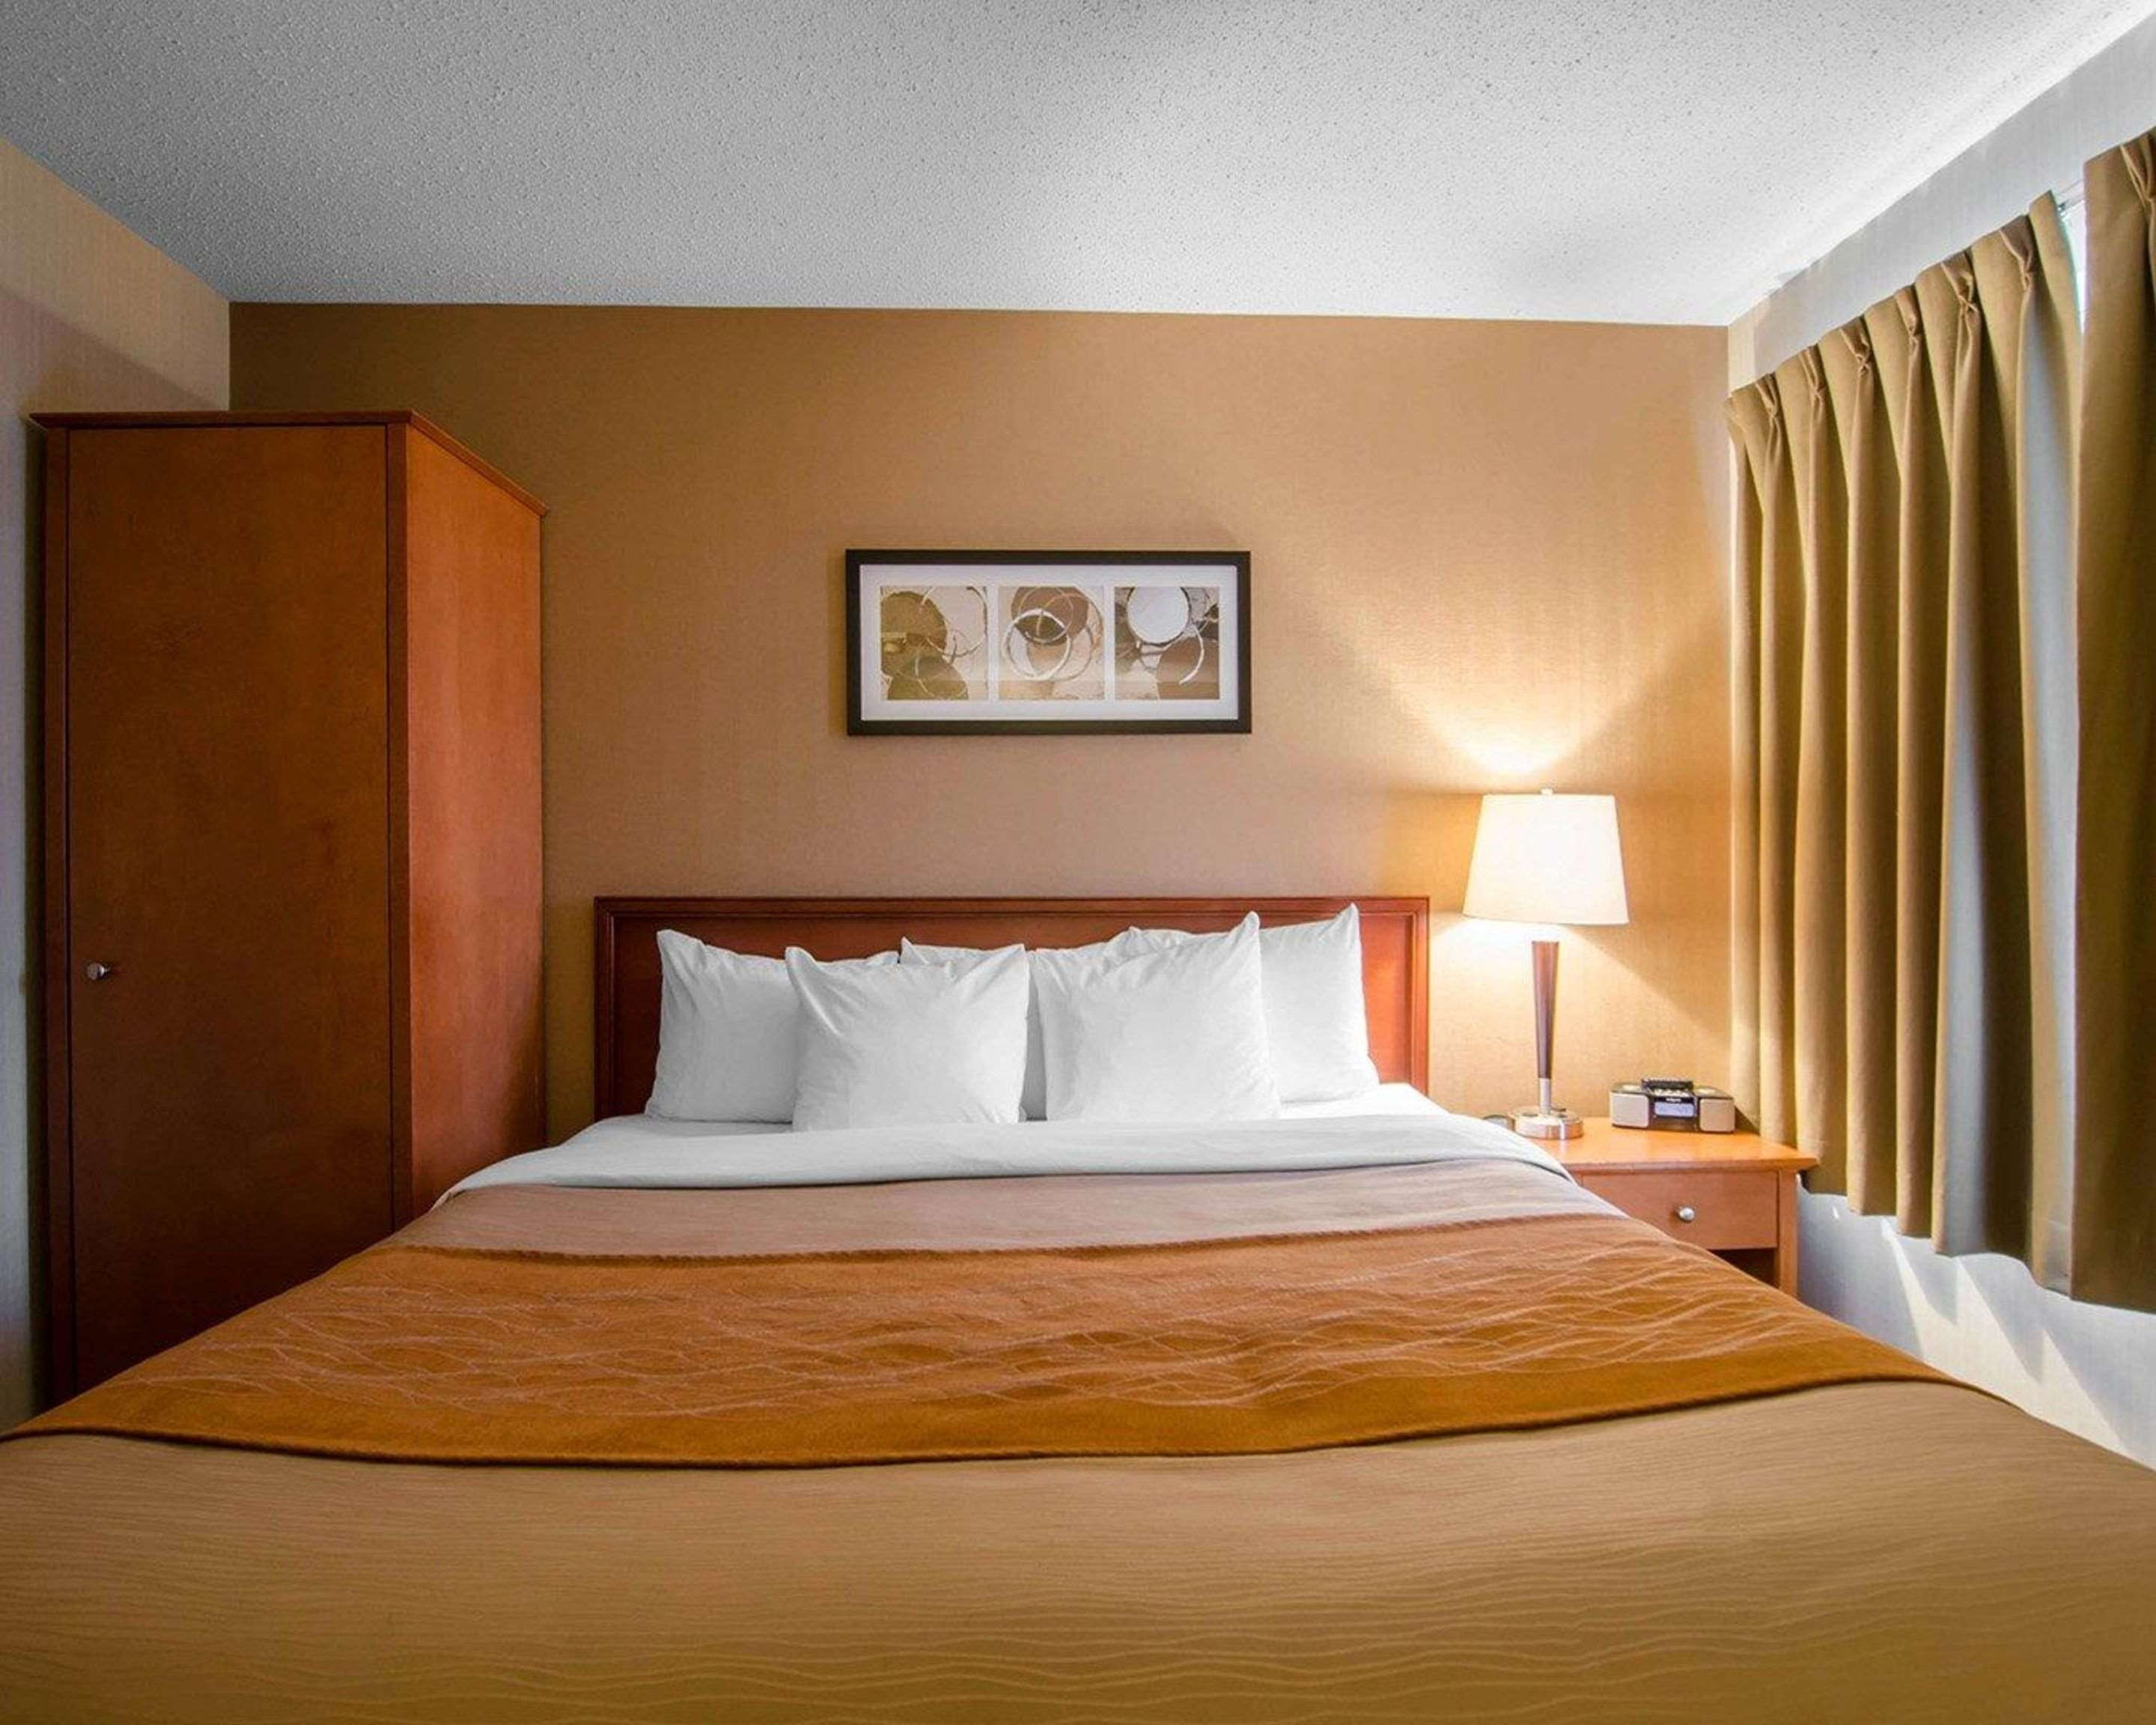 Comfort Inn in Saskatoon: Guest room with queen bed